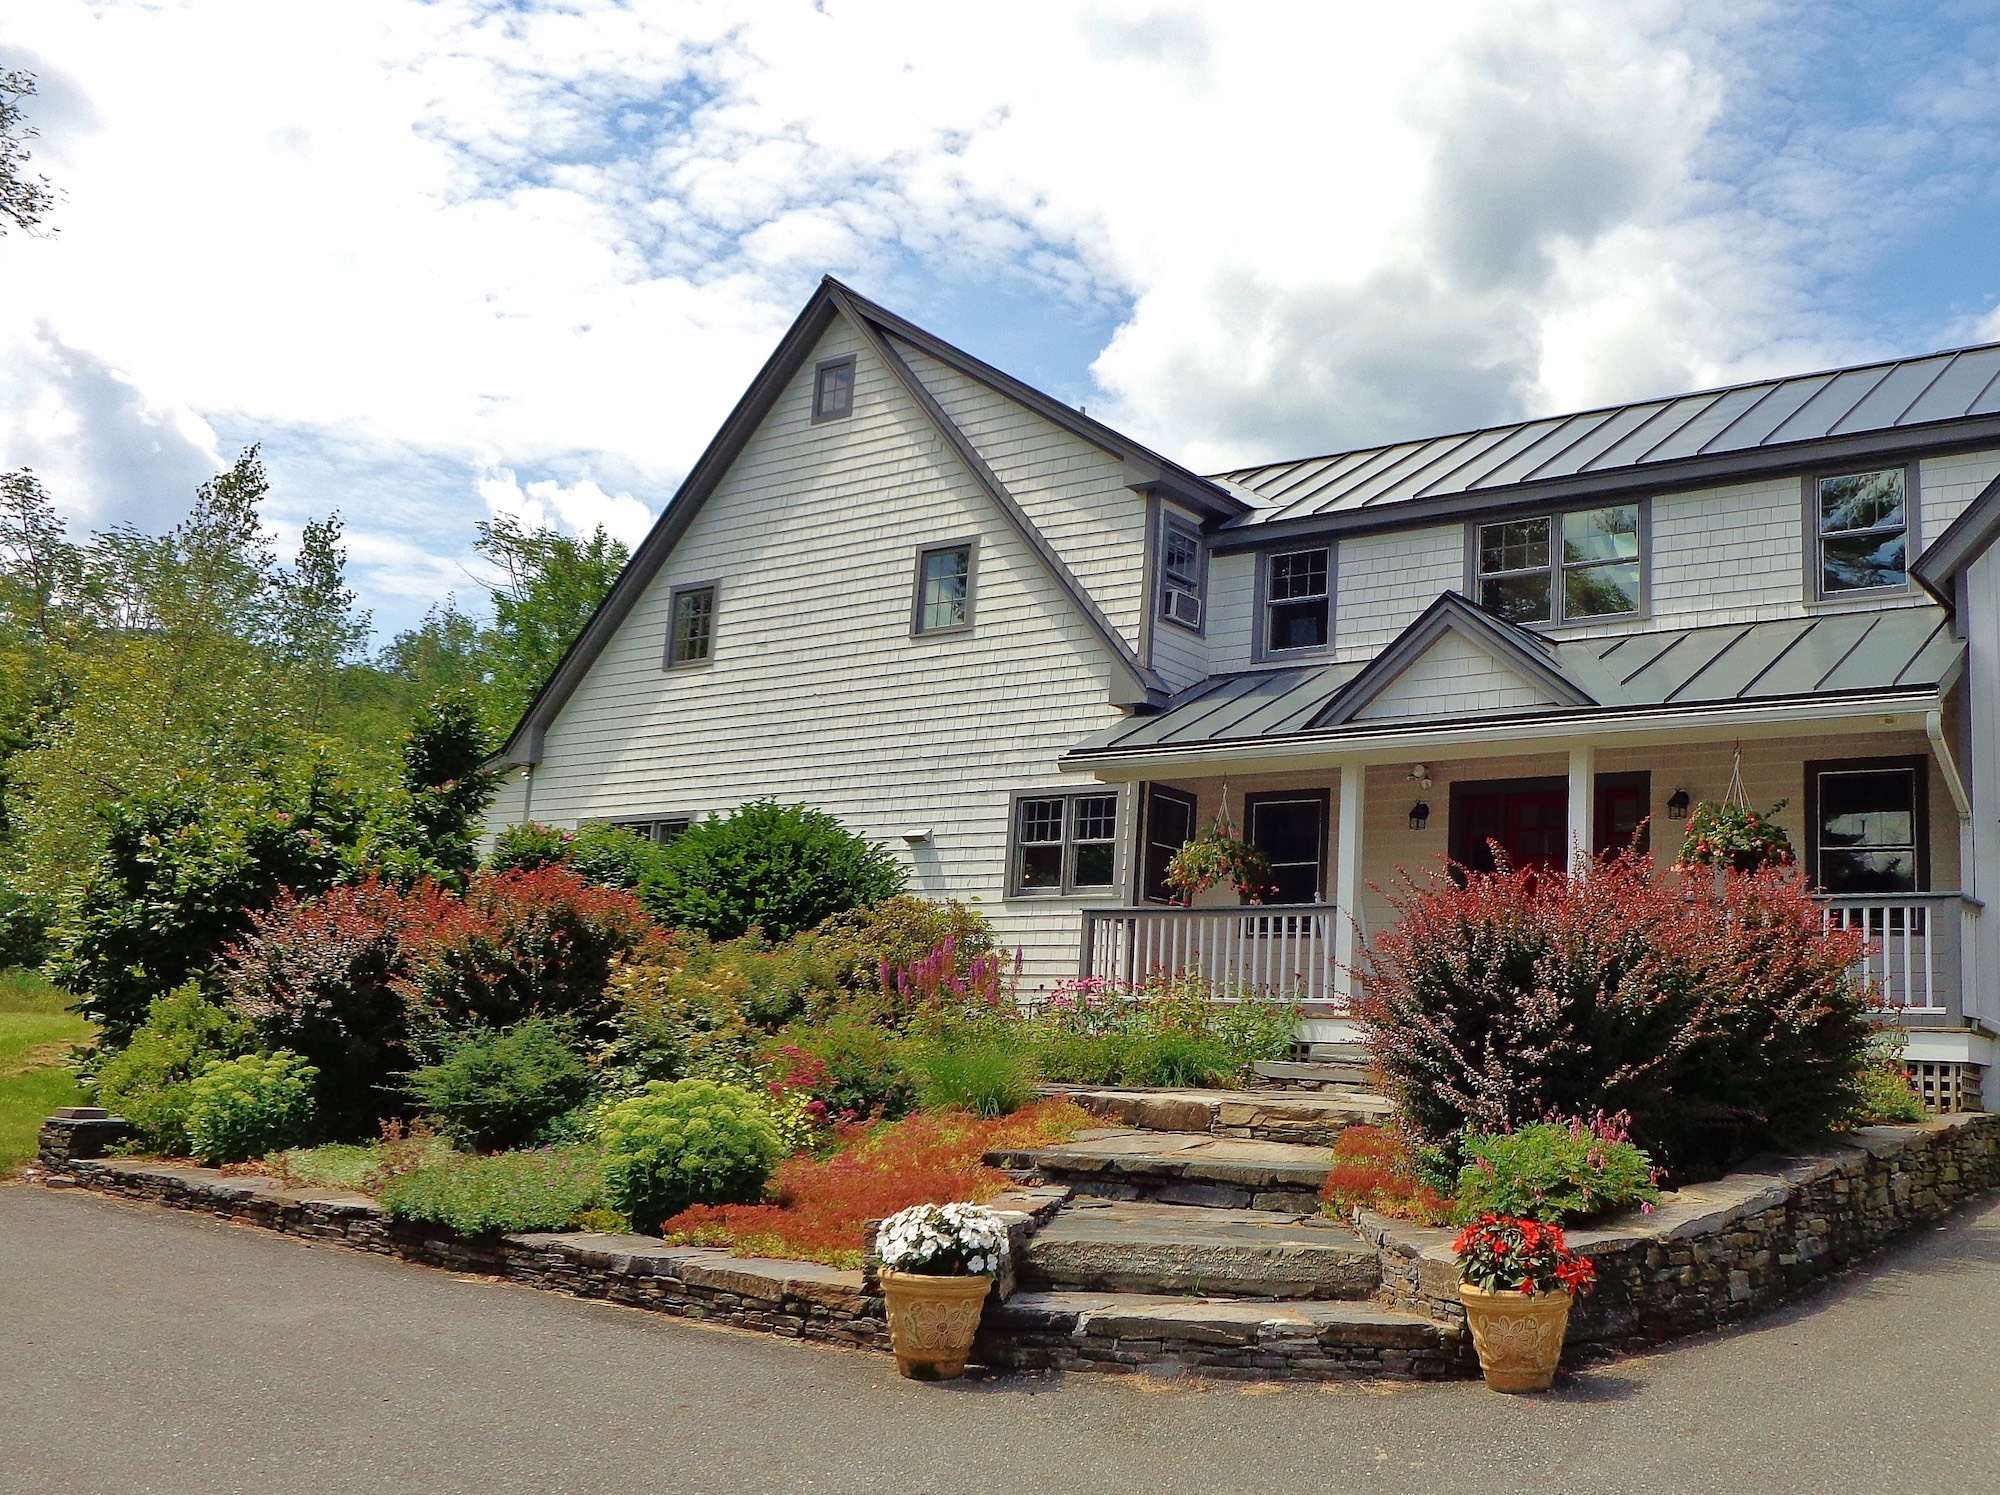 The Pond House: An approach worth buying?